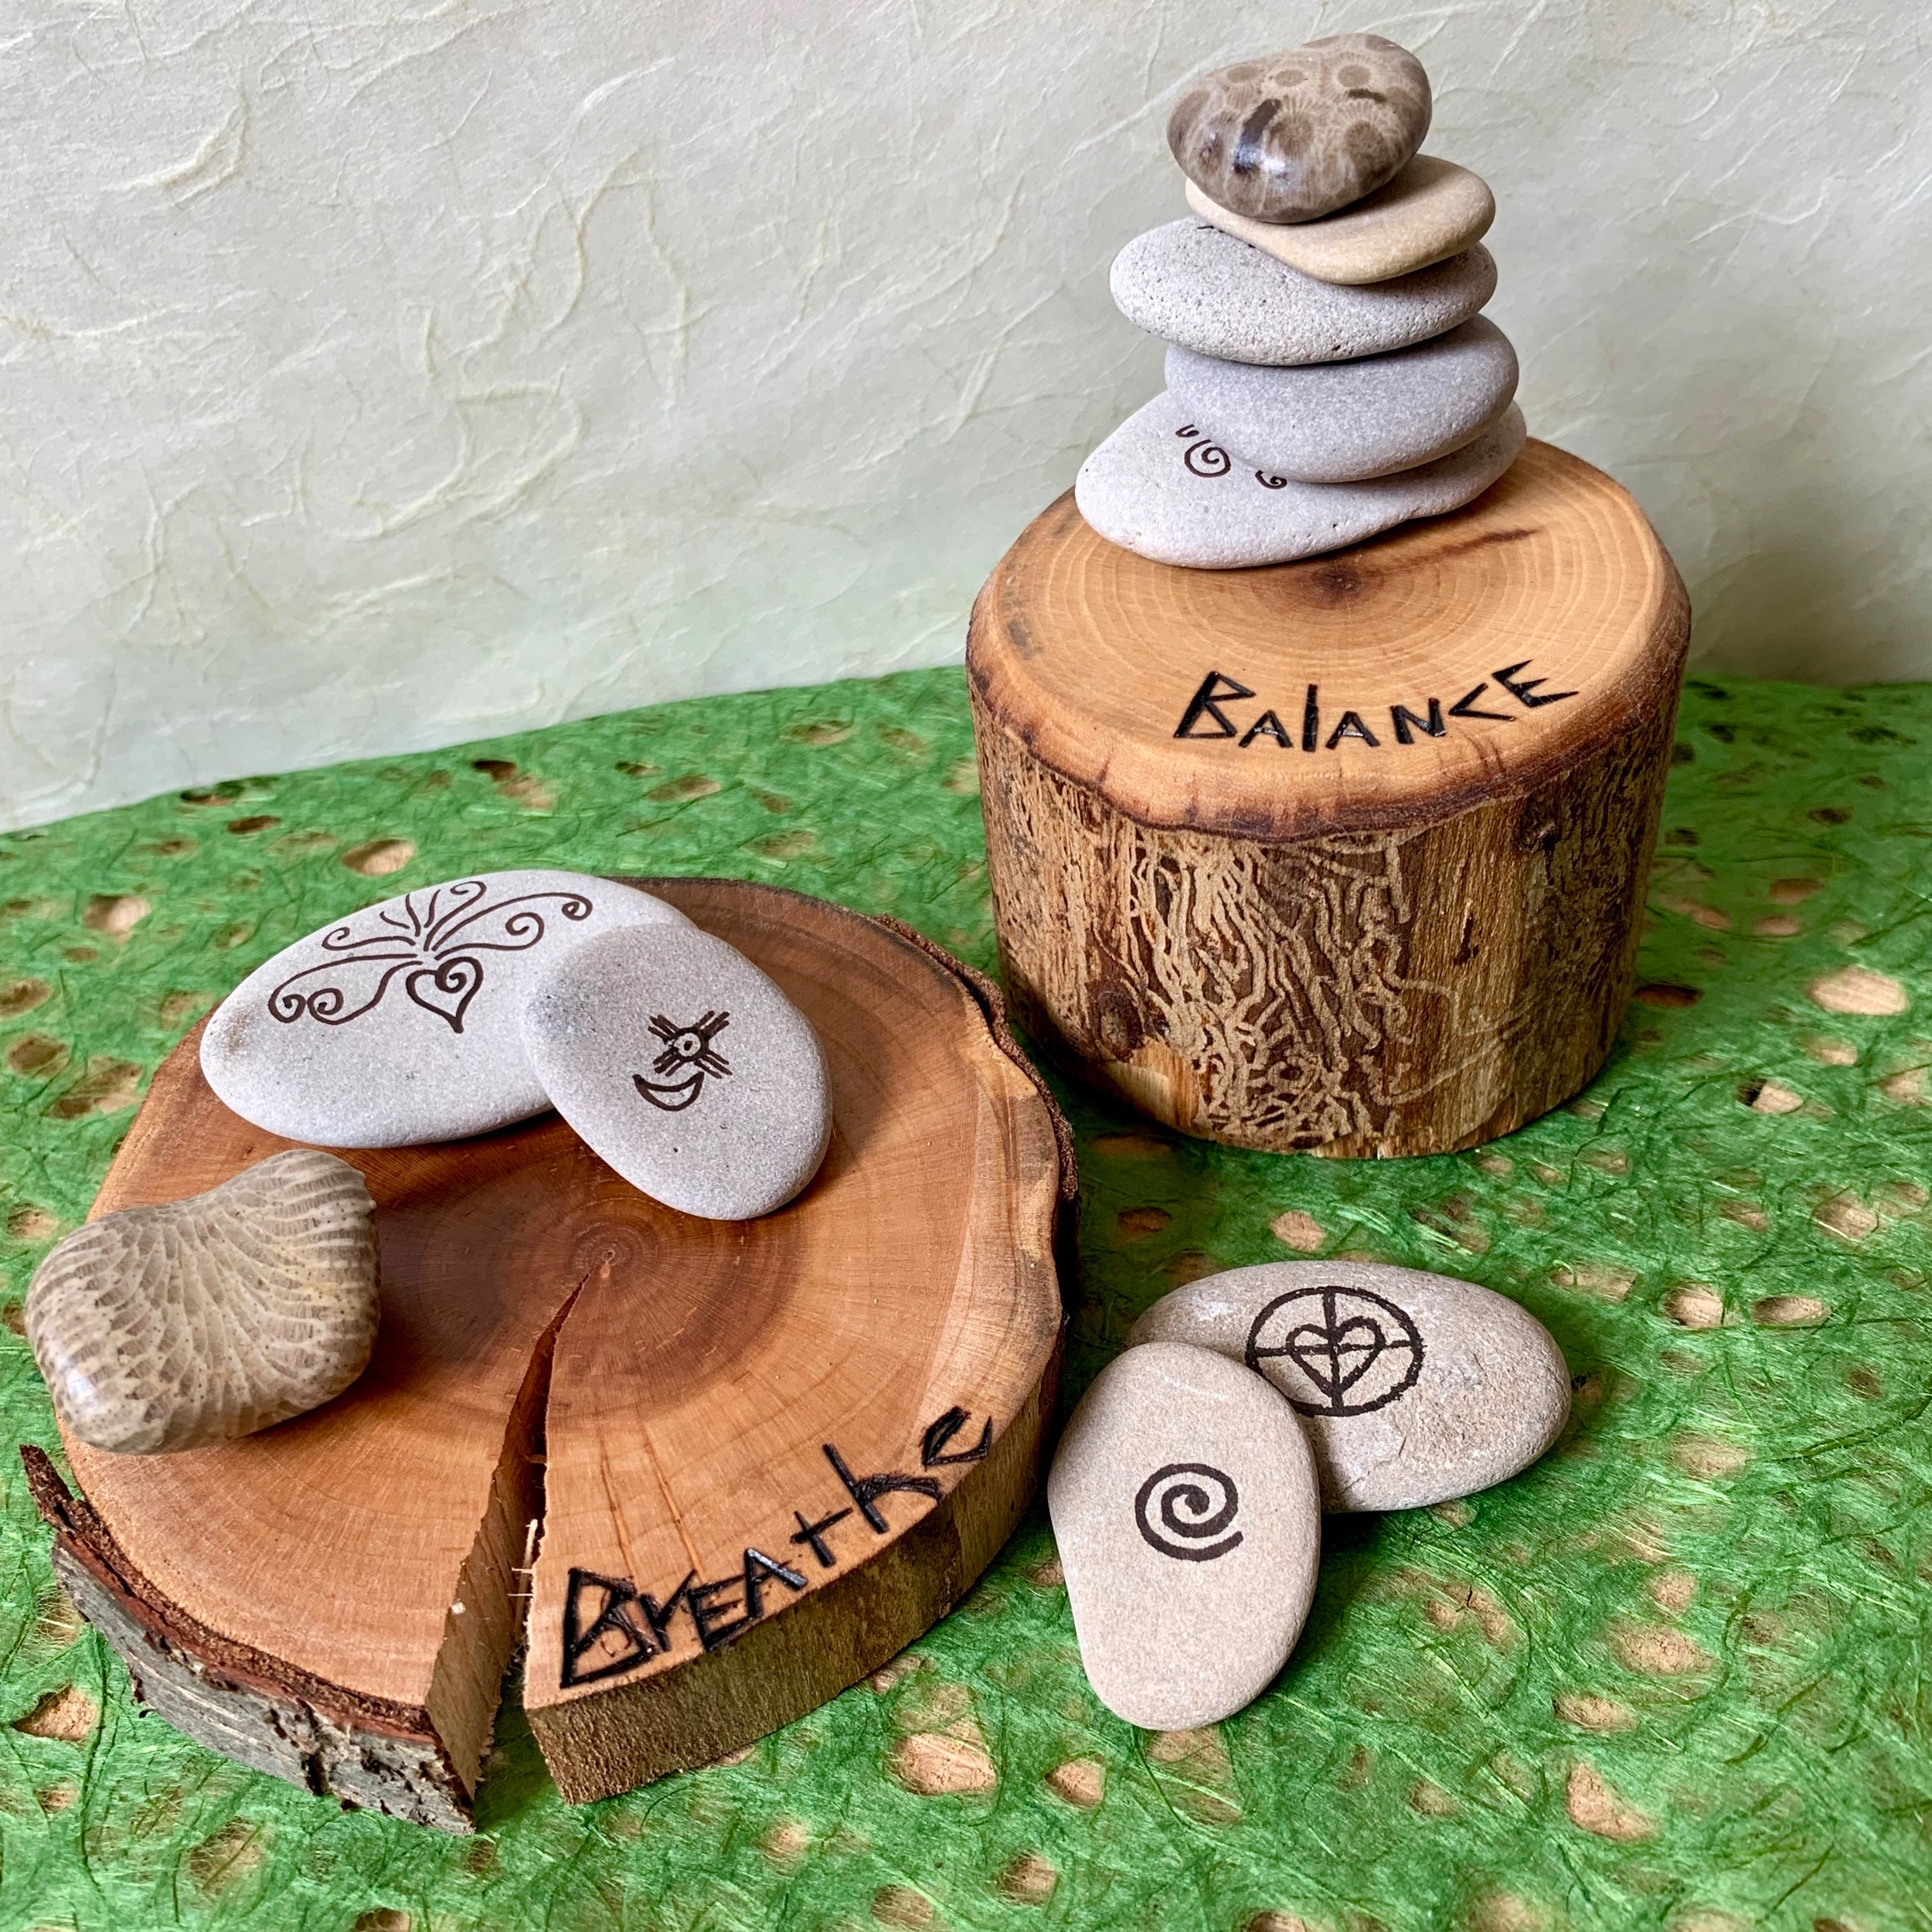 Stone Cairn & Symbologies - Come back to balance as you create your personal Stone Cairn & Wooden Stand. Choose water-worn Great Lakes stones and a tree-gifted base to support them. Explore various cultural symbols and add them to your stones, connecting you to those elements as you stack them. Top your cairn off with a fossil of choice, reflecting the deep history of our earth, infused with encaustic wax. Let your cairn stand tall on the wooden pedestal once you've burned a word of choice on its surface as a visual reminder. Ages AdultA handmade mini-booklet is included to write symbol origins and meanings if desired, as well as the stone cairn story. All materials are provided.Instructor: Lisa JarrellWorkshop fee: $28 per person, minimum 4, maximum 12